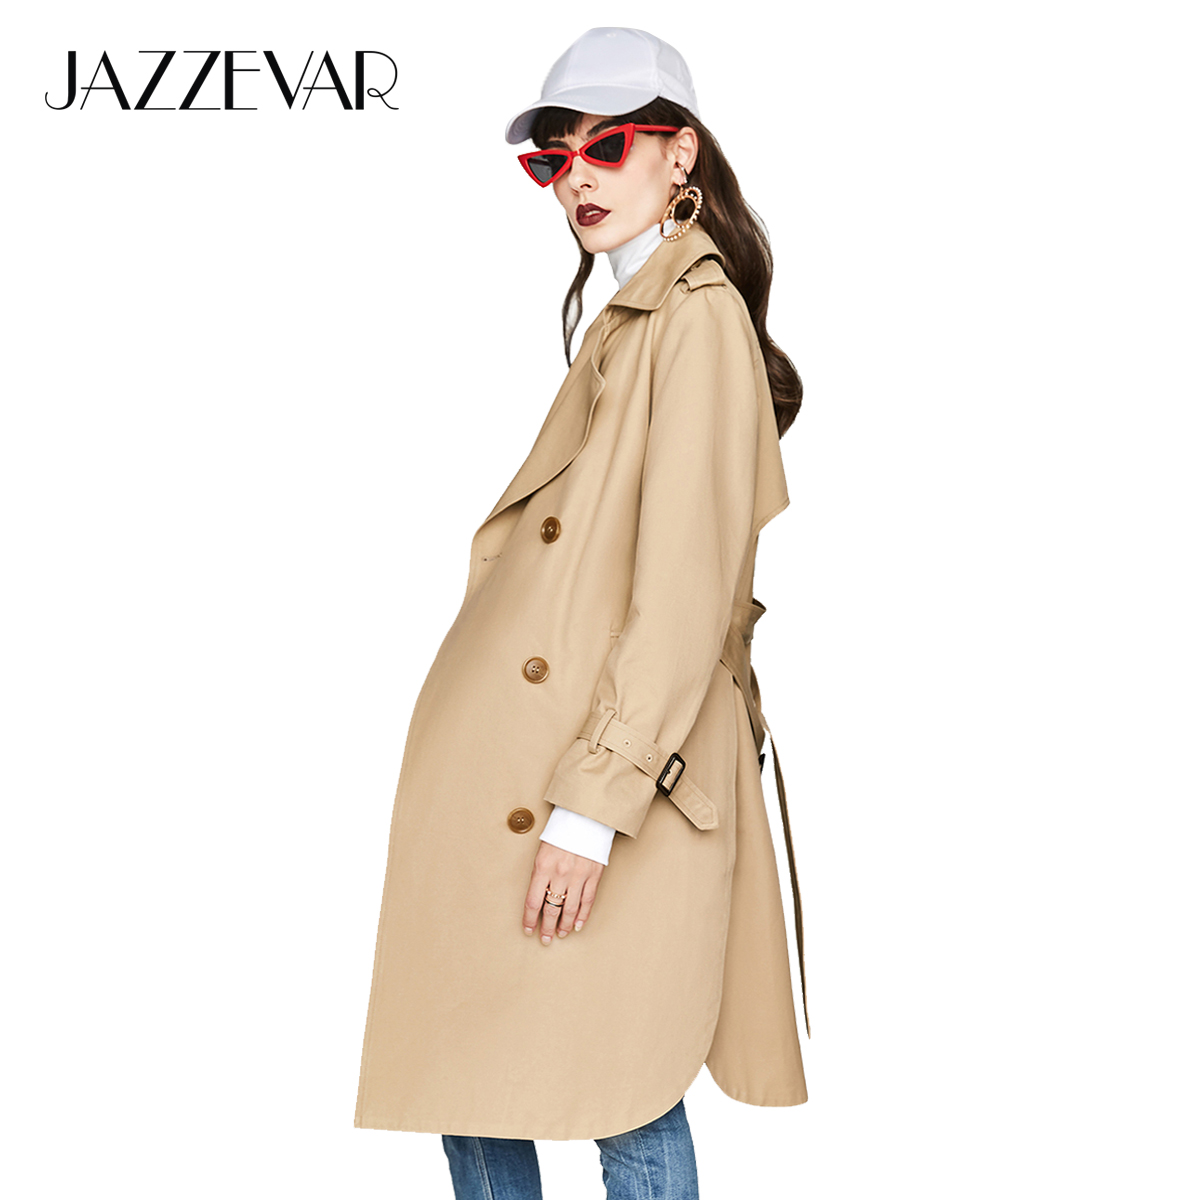 JAZZEVAR new 2019 Autumn Fashion Casual Women s Khaki Trench Coat Double Breasted Long Outerwear For